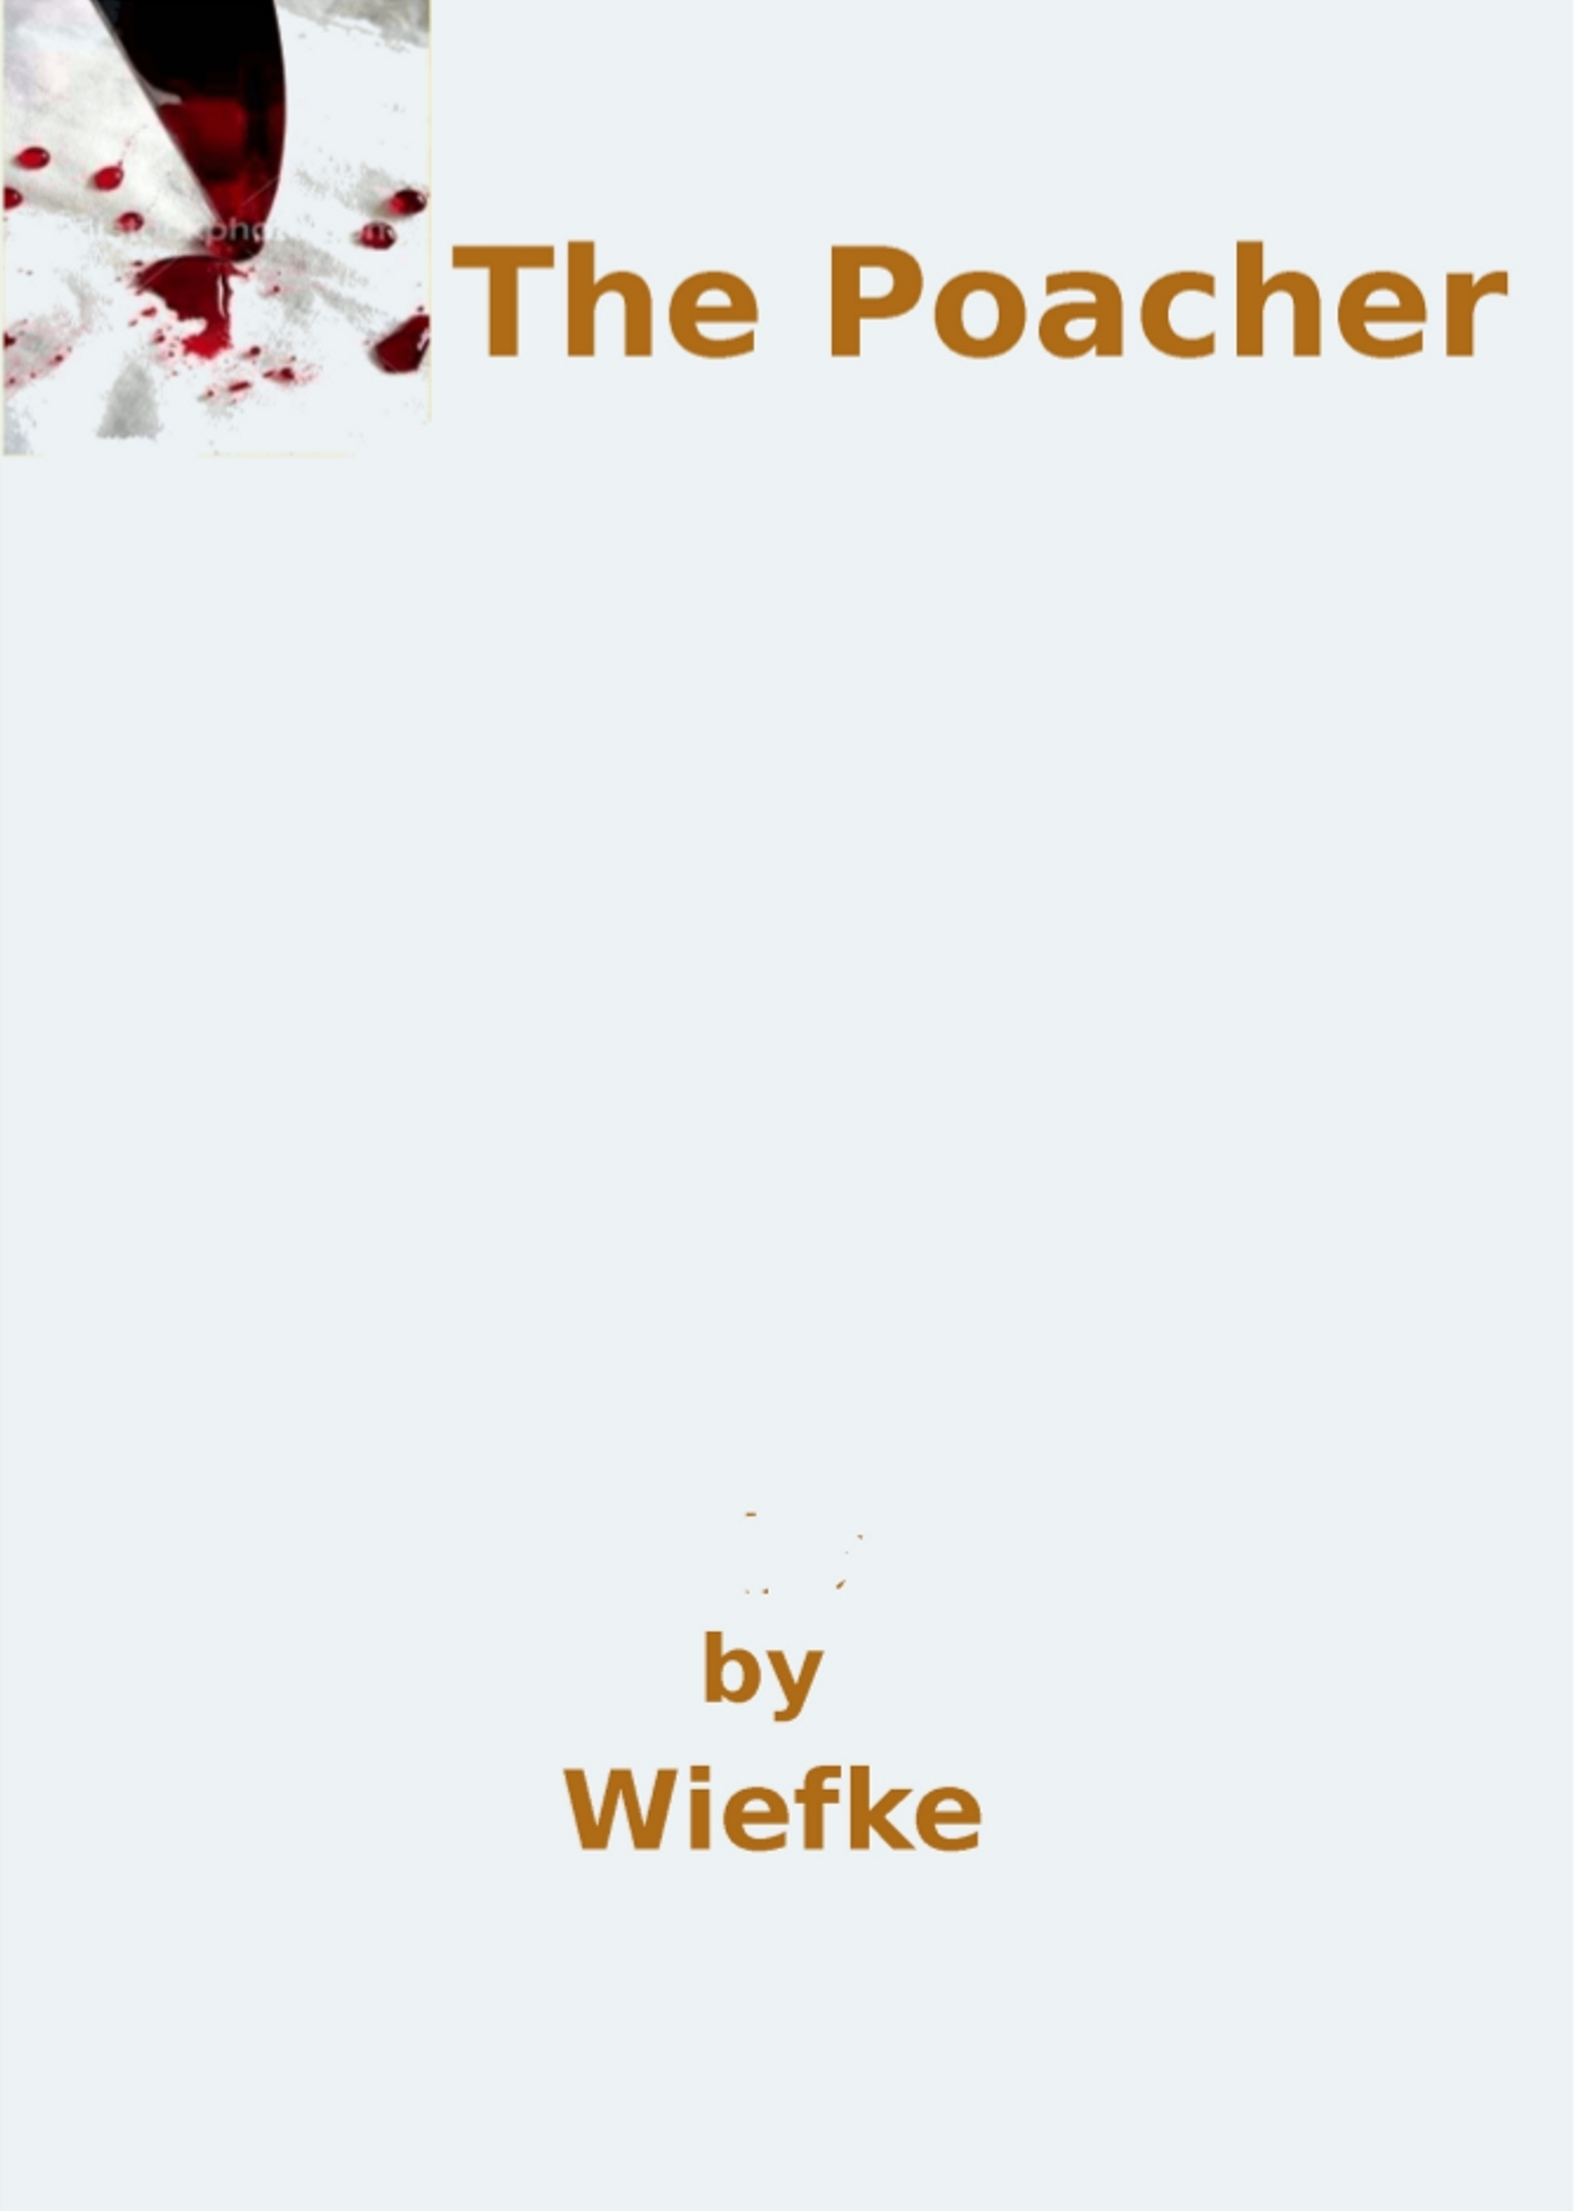 The Poacher  by  Wiefke